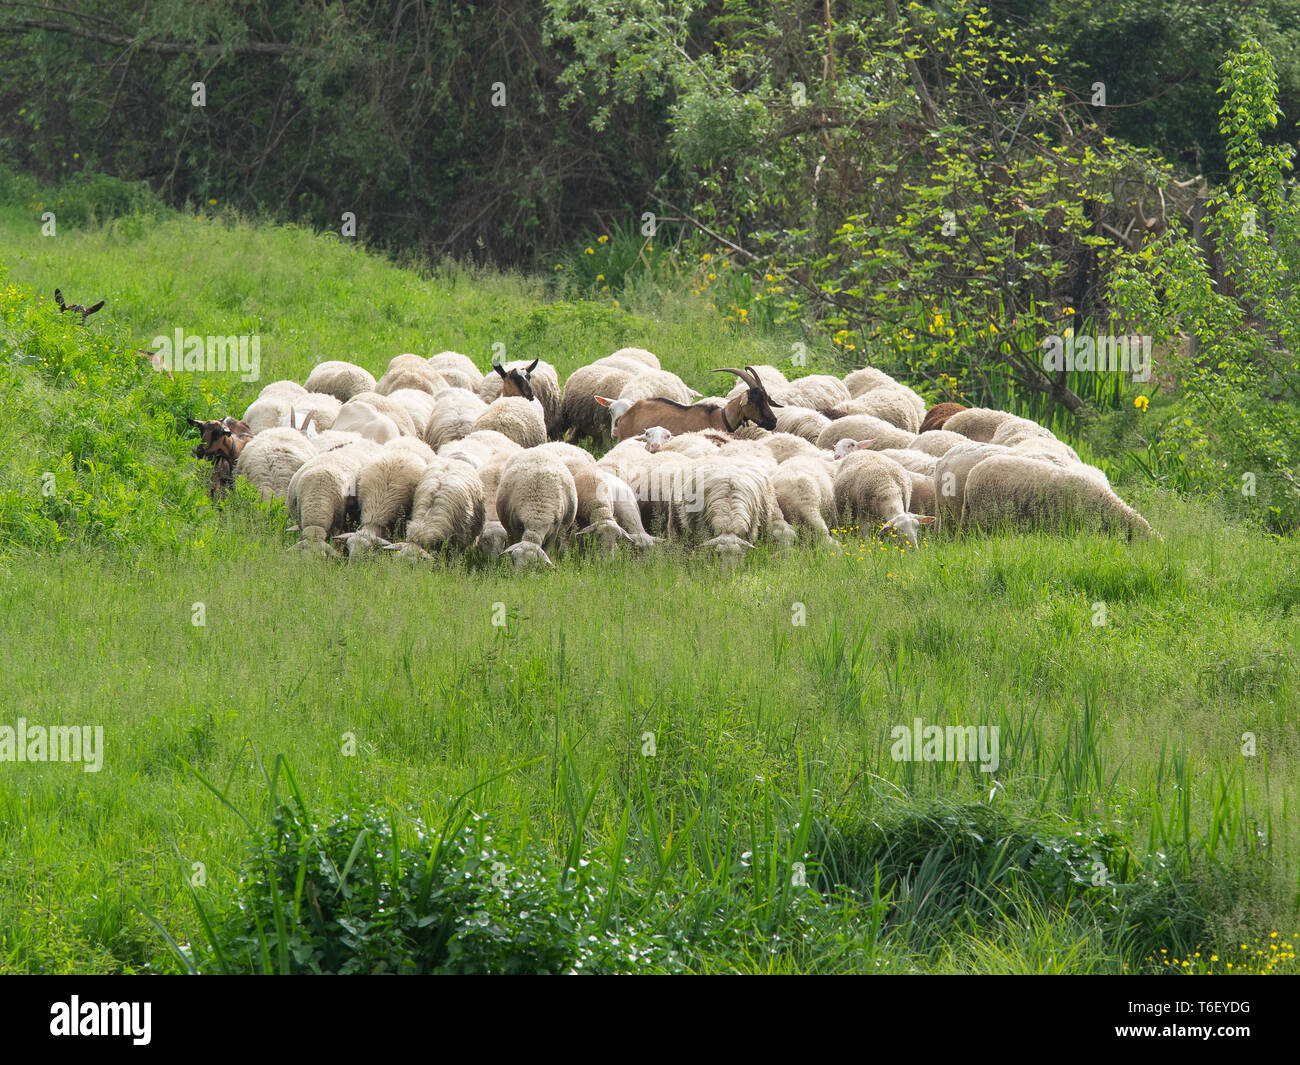 flock of sheep and goats graze surrounded by lush spring grass and flowers, in a sunny day - Stock Image